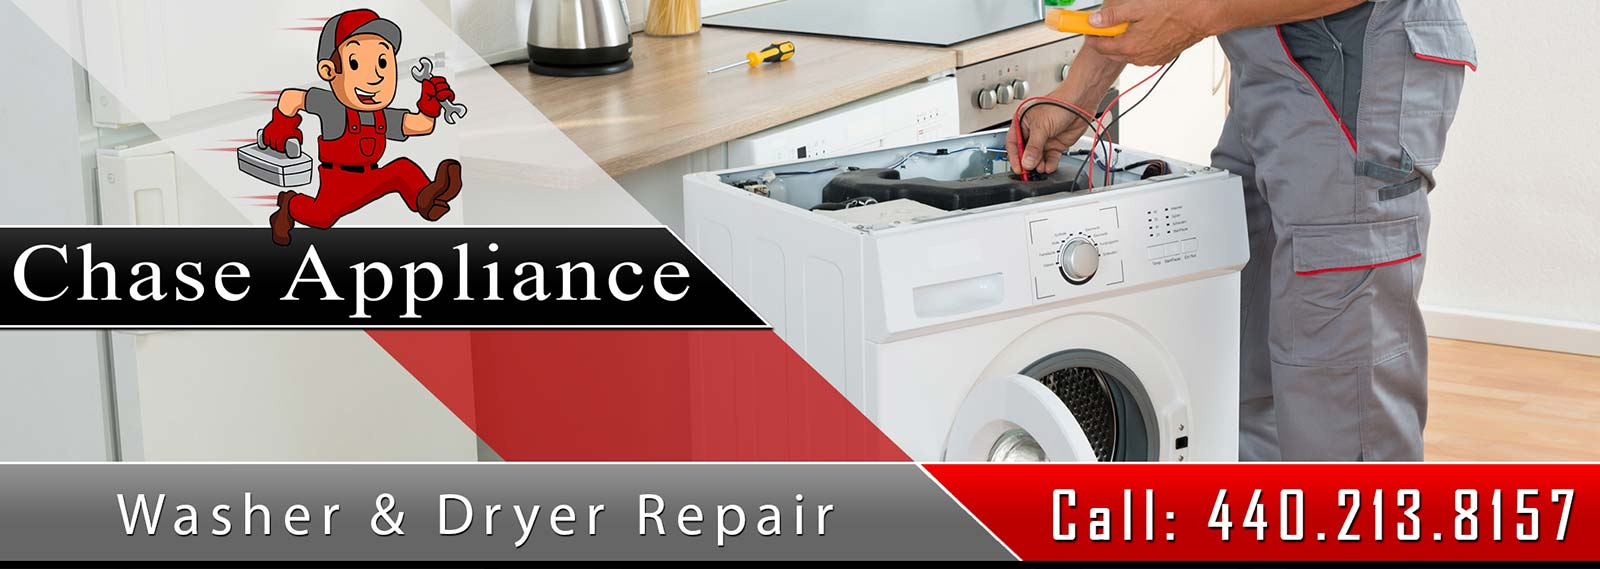 Washer and Dryer Appliance Repair and Service